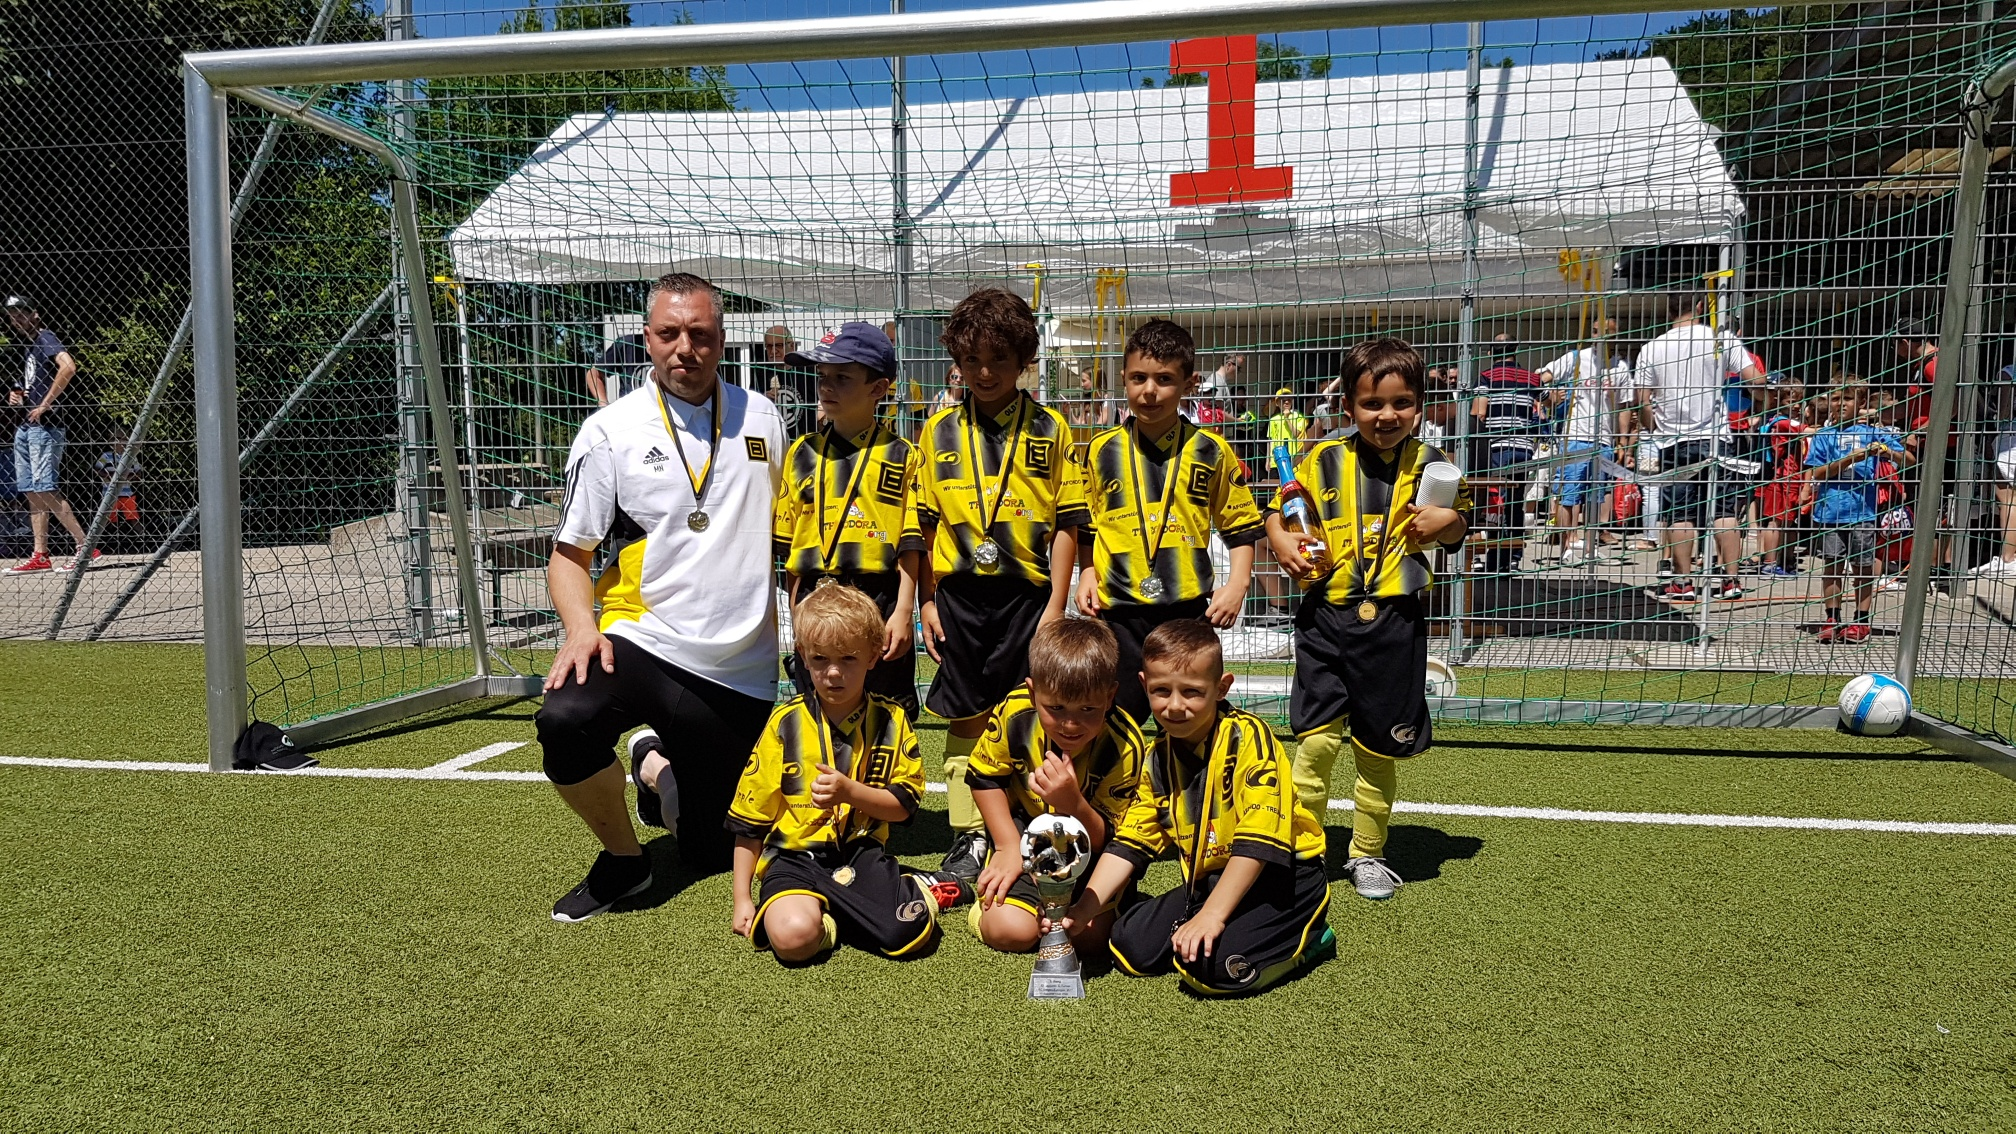 1. Platz BSC Old Boys gelb